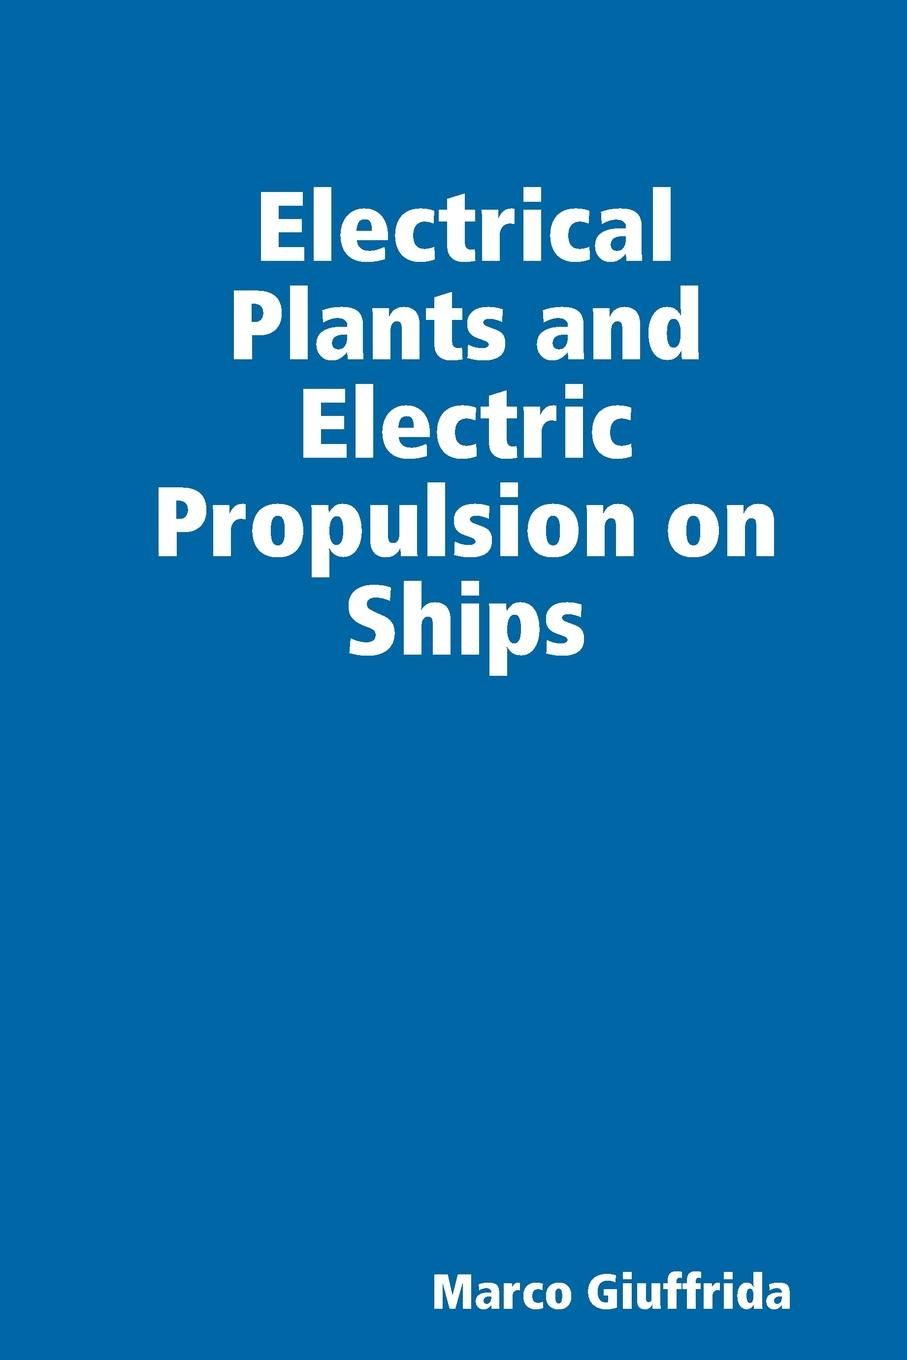 Marco Giuffrida Electrical Plants and Electric Propulsion on Ships